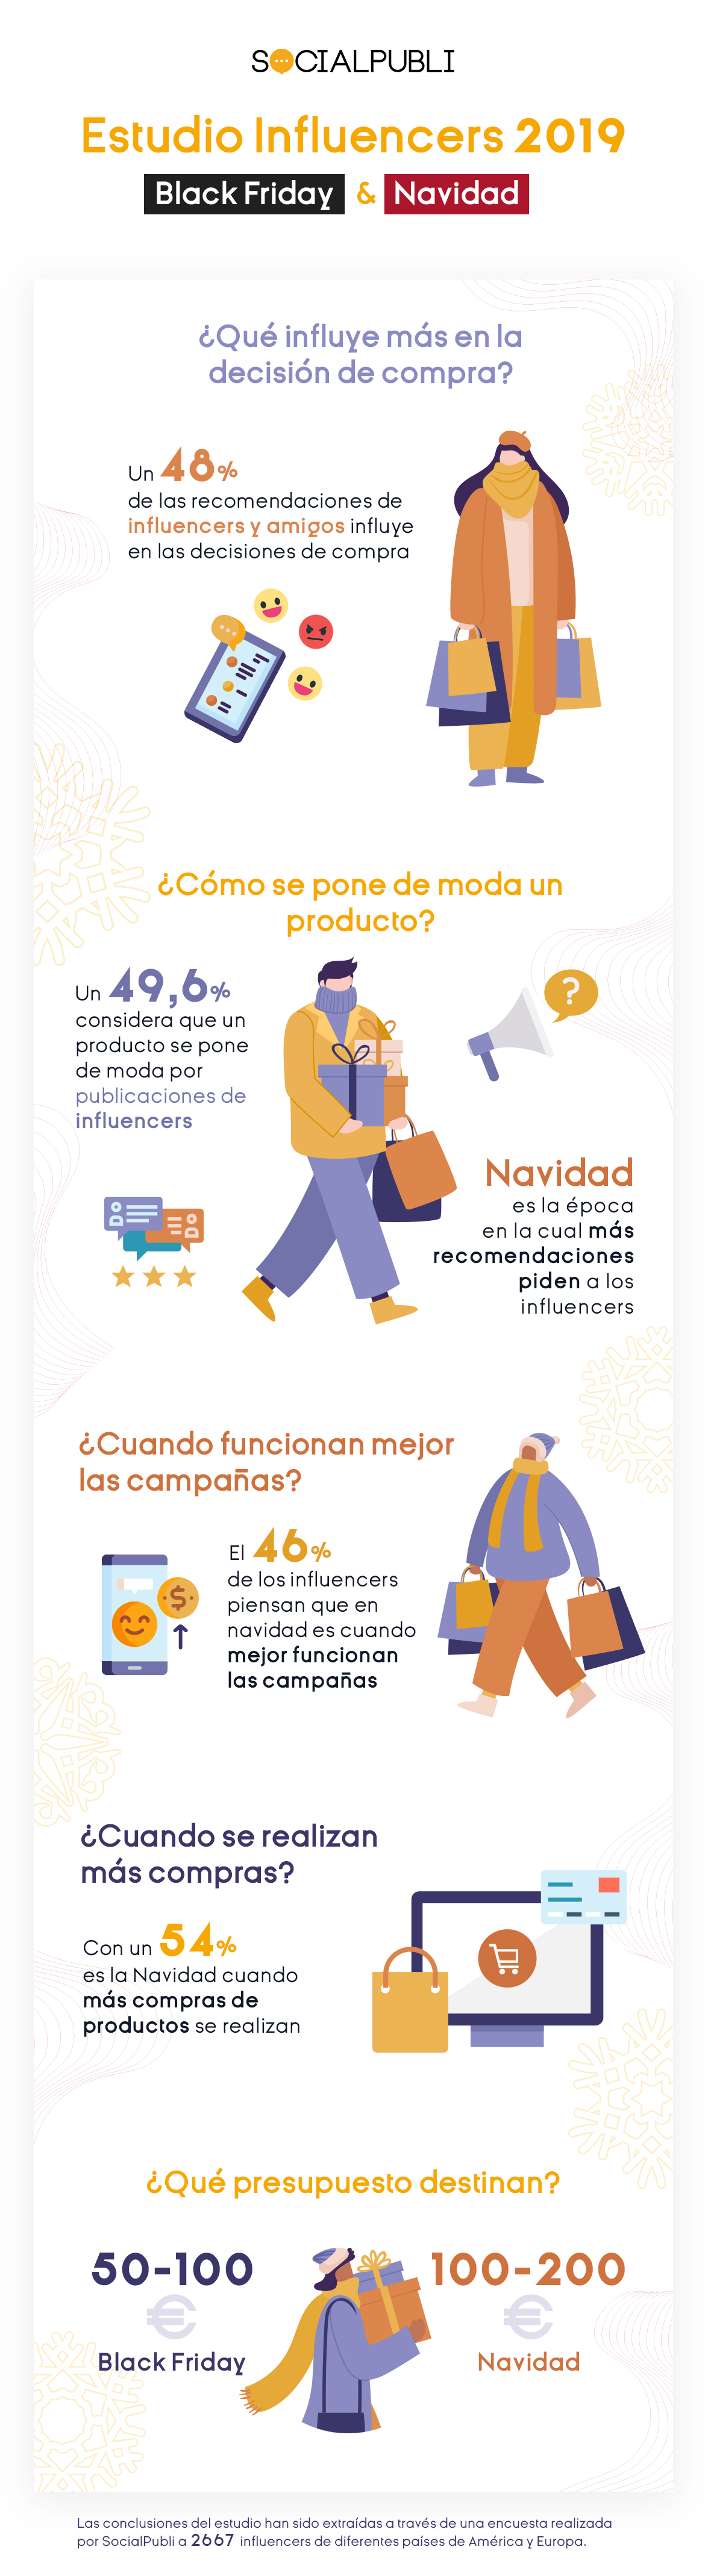 Estudio Influencers 2019 Black Friday y Navidad